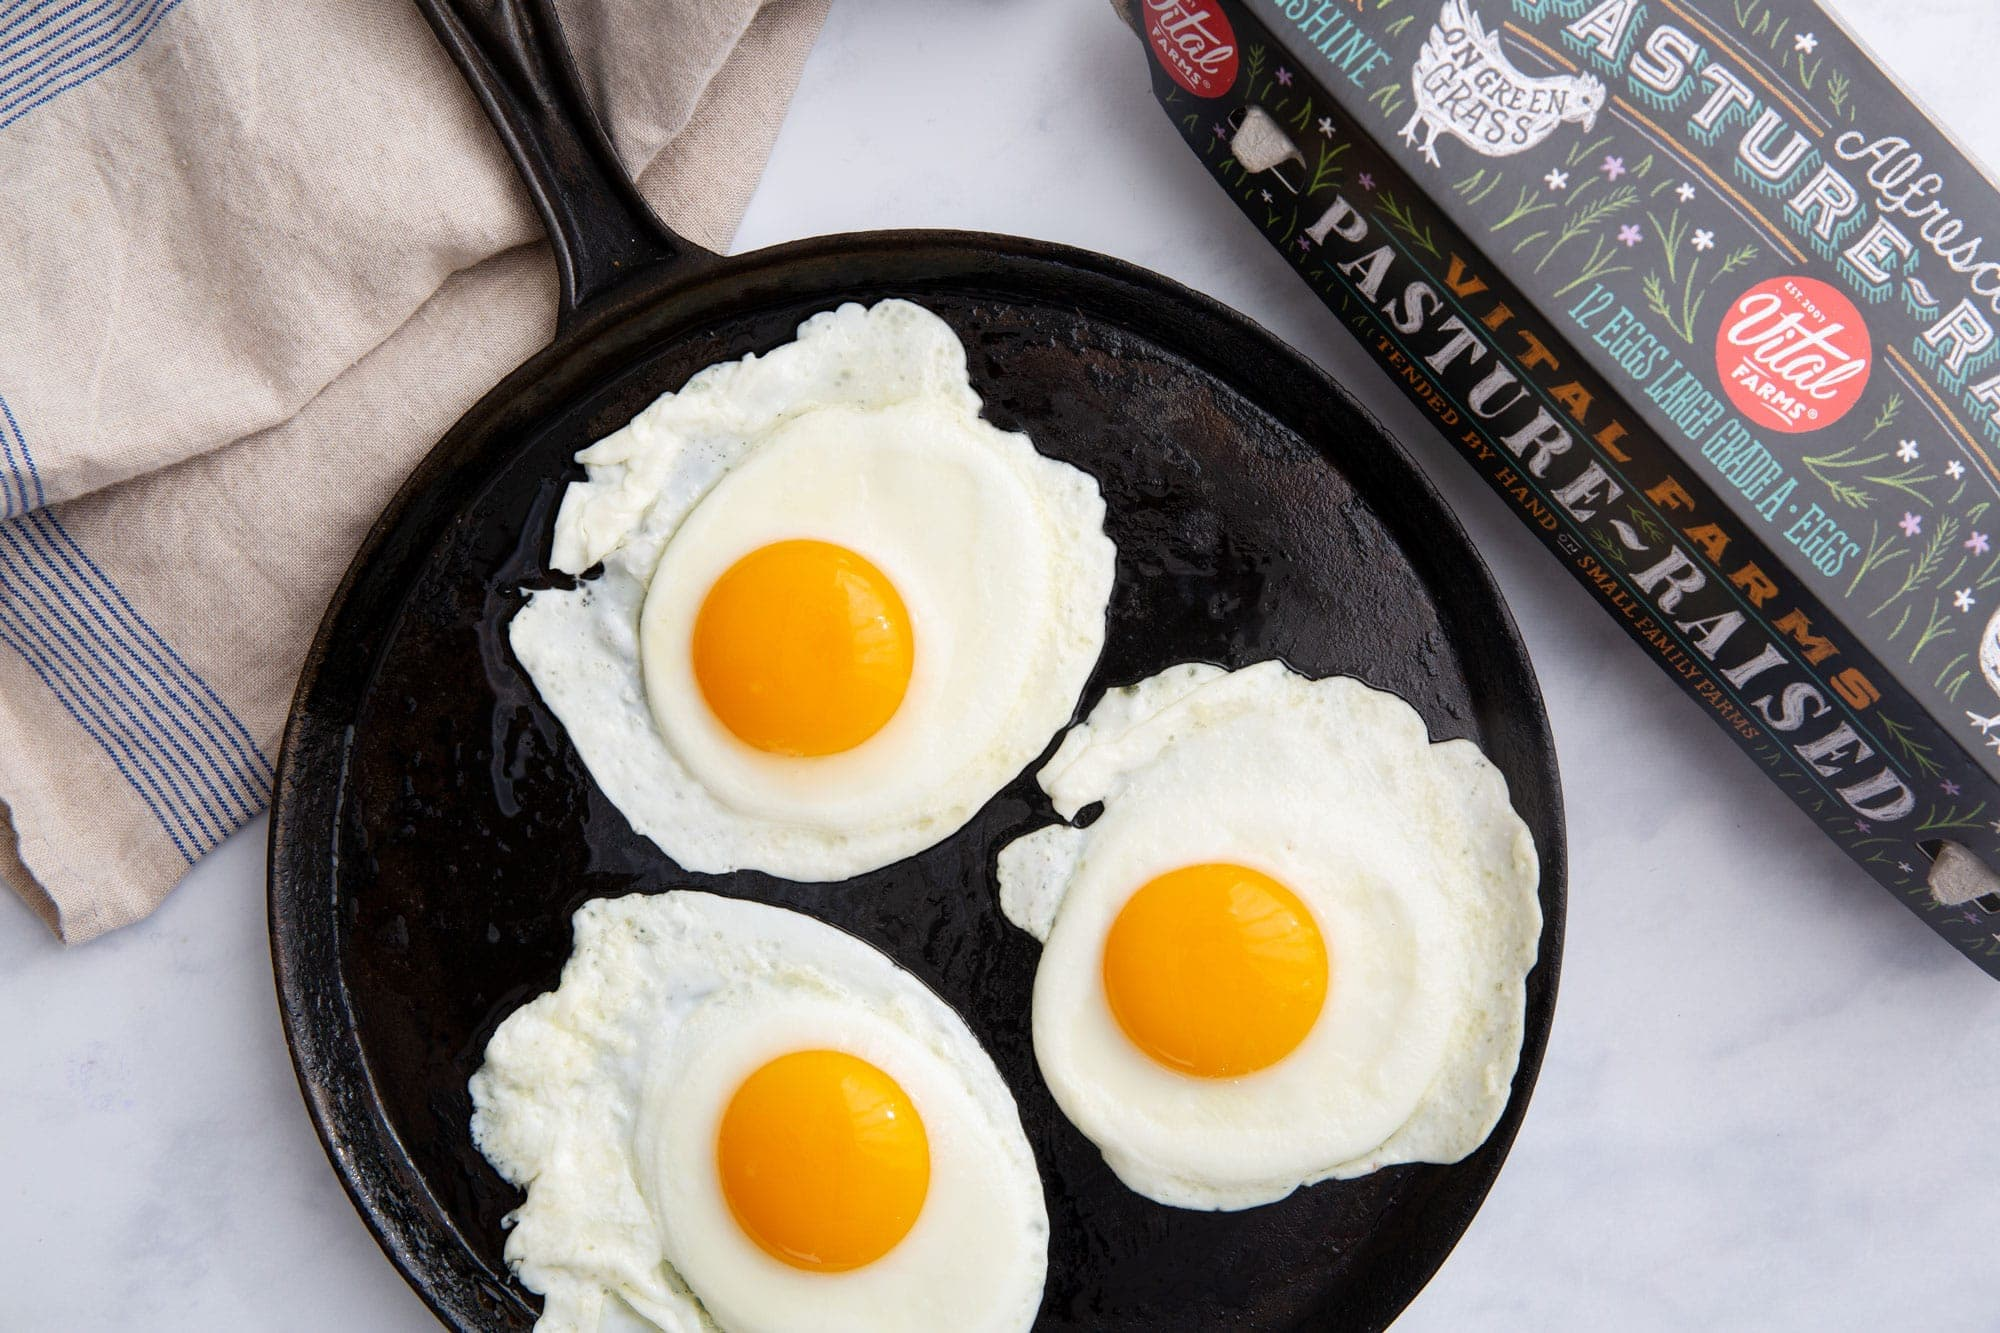 Three sunny side up eggs on a cast iron skillet next to a carton of pasture raised eggs.